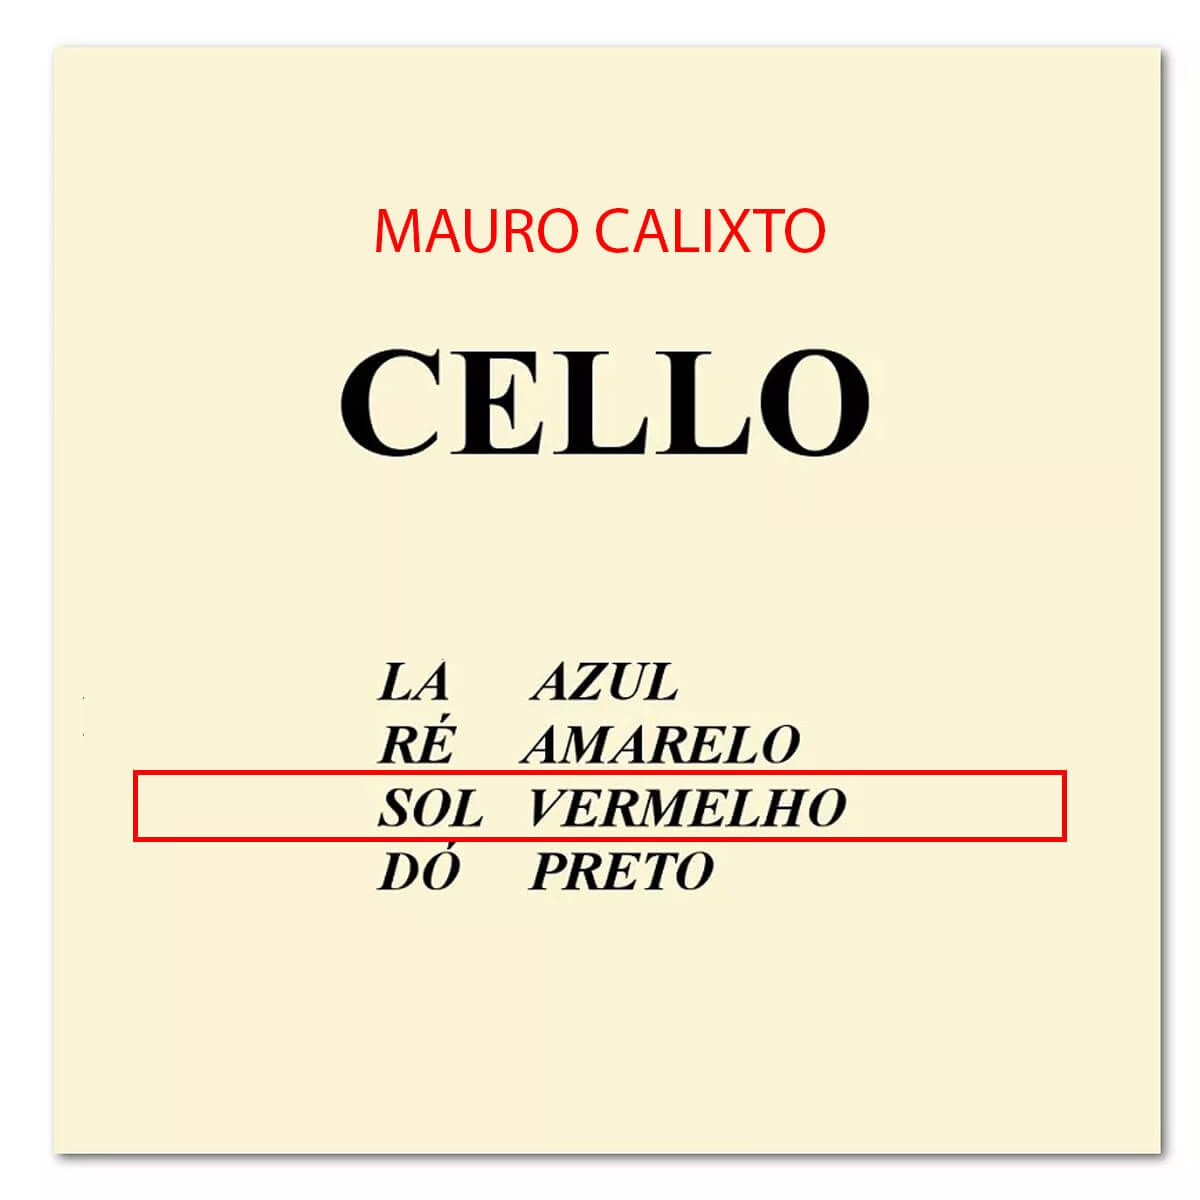 Encordoamento Para Cello - Mauro Calixto